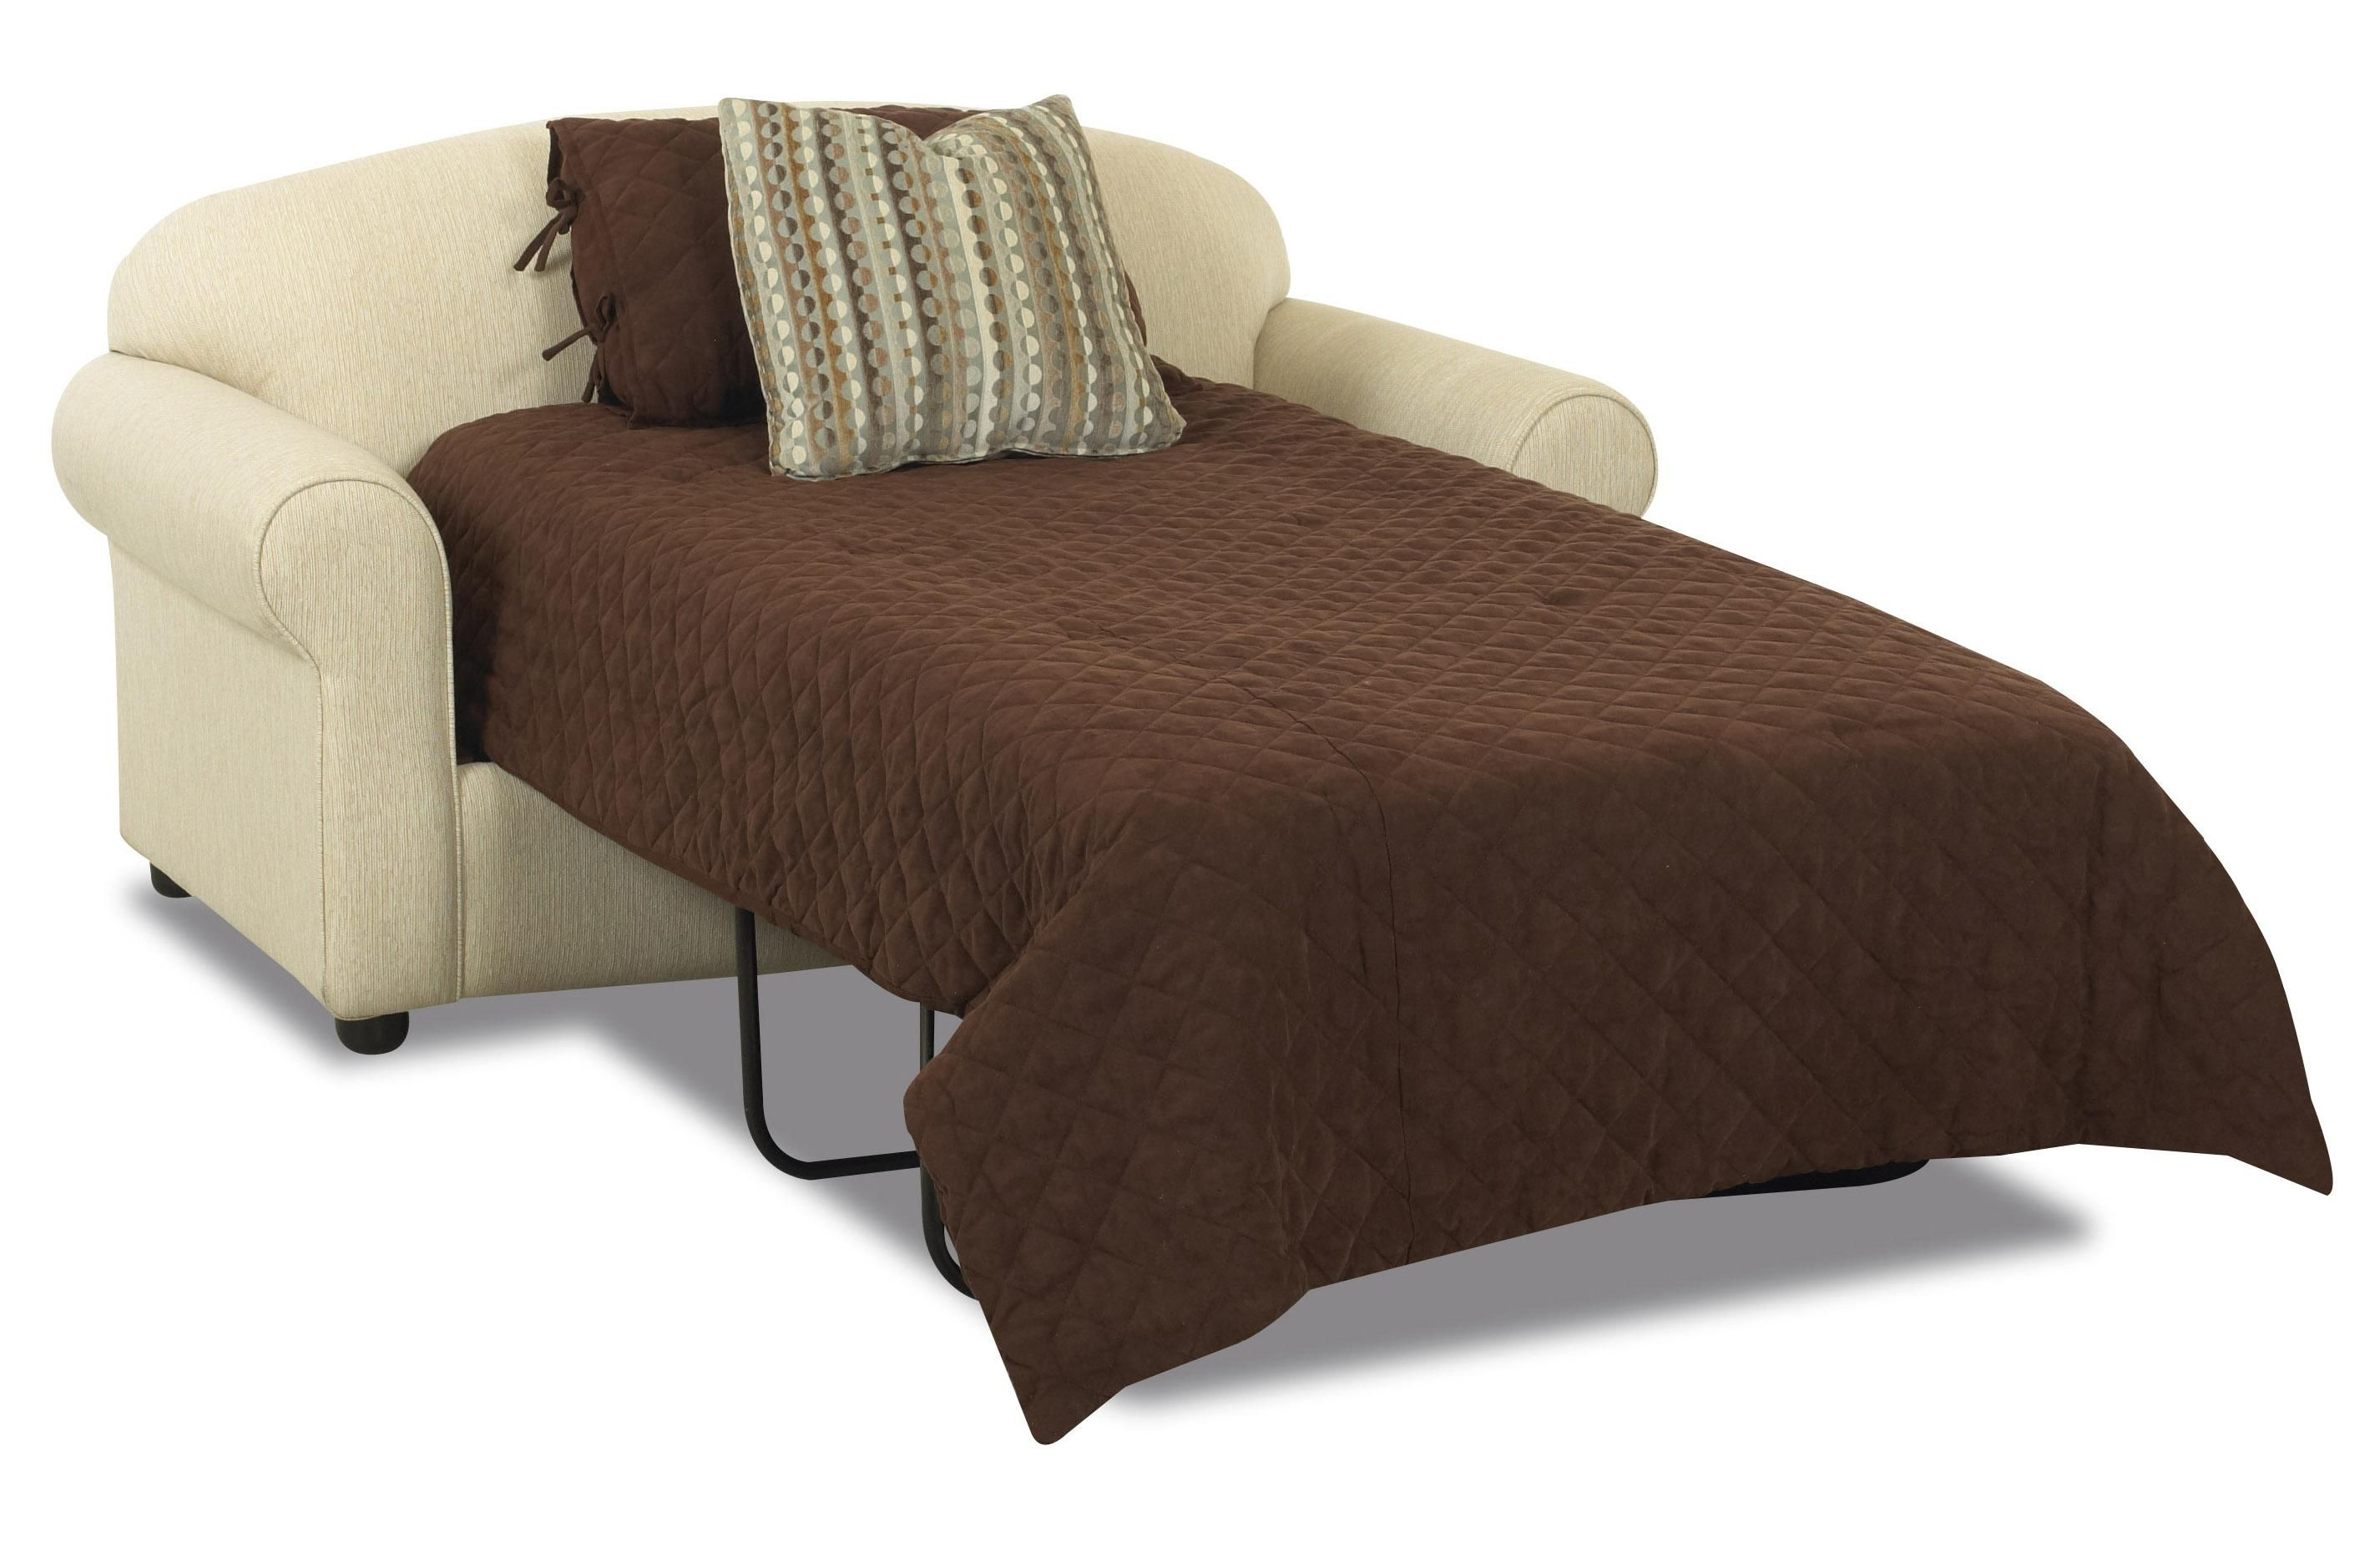 Possibilities Twin Sleeper Sofa By Klaussner (63Wx34Hx36D)